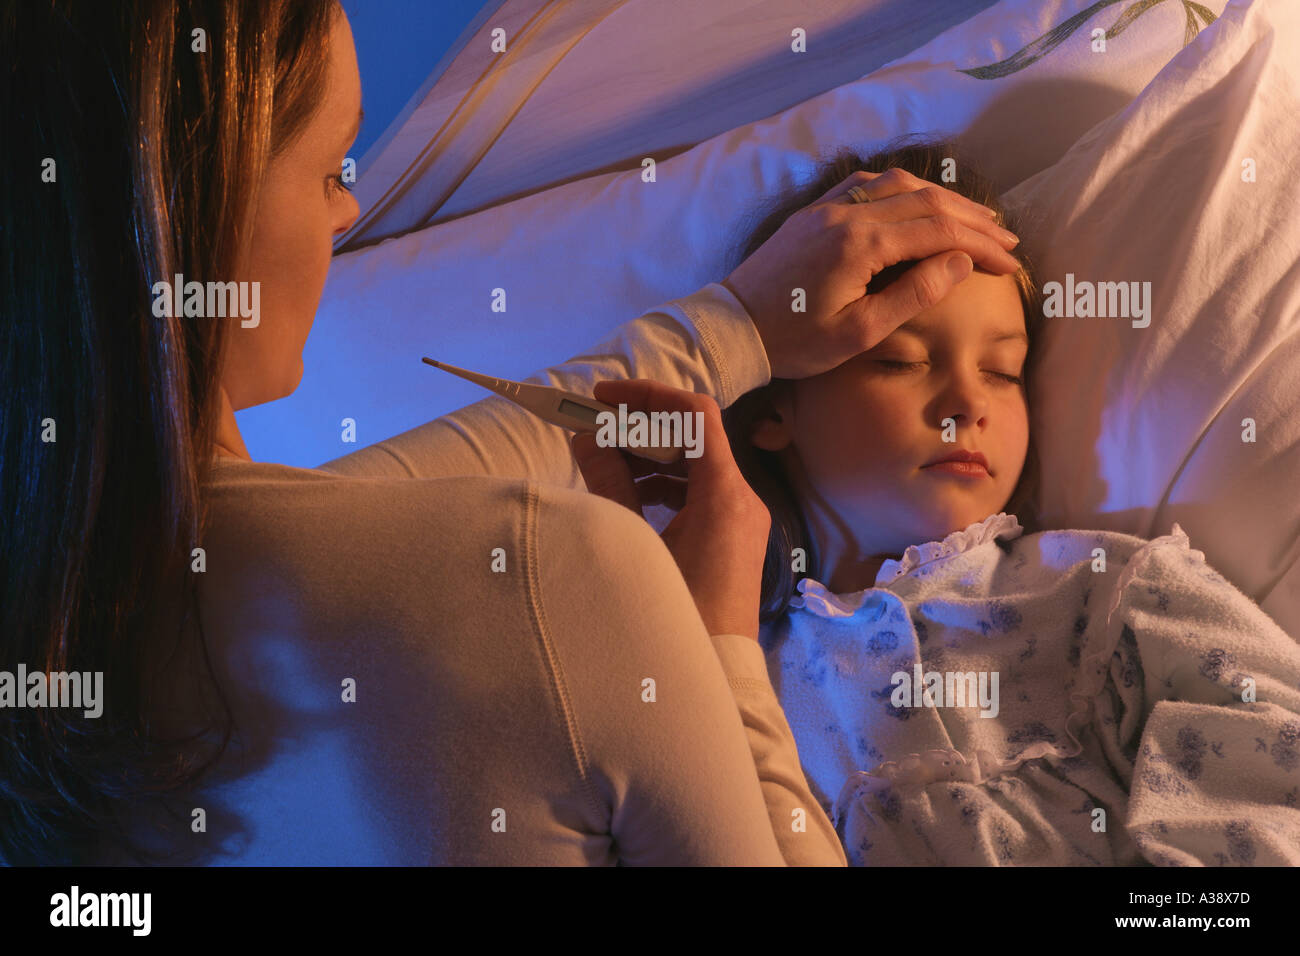 Mother tending to sick child - Stock Image